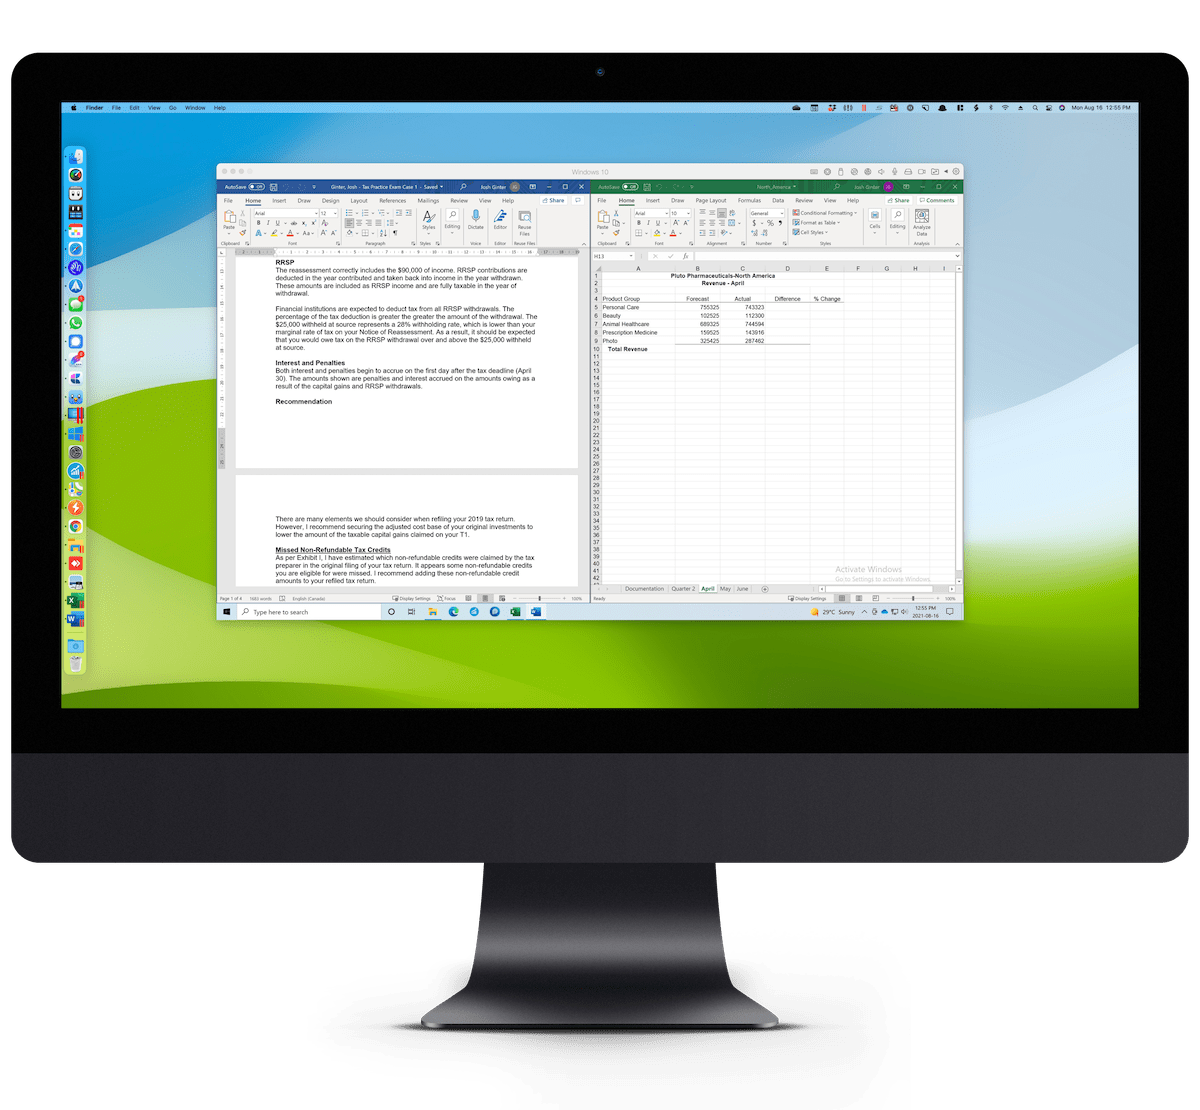 Three Reasons to Run Microsoft Office Apps in Parallels Rather than Through a Native Mac App